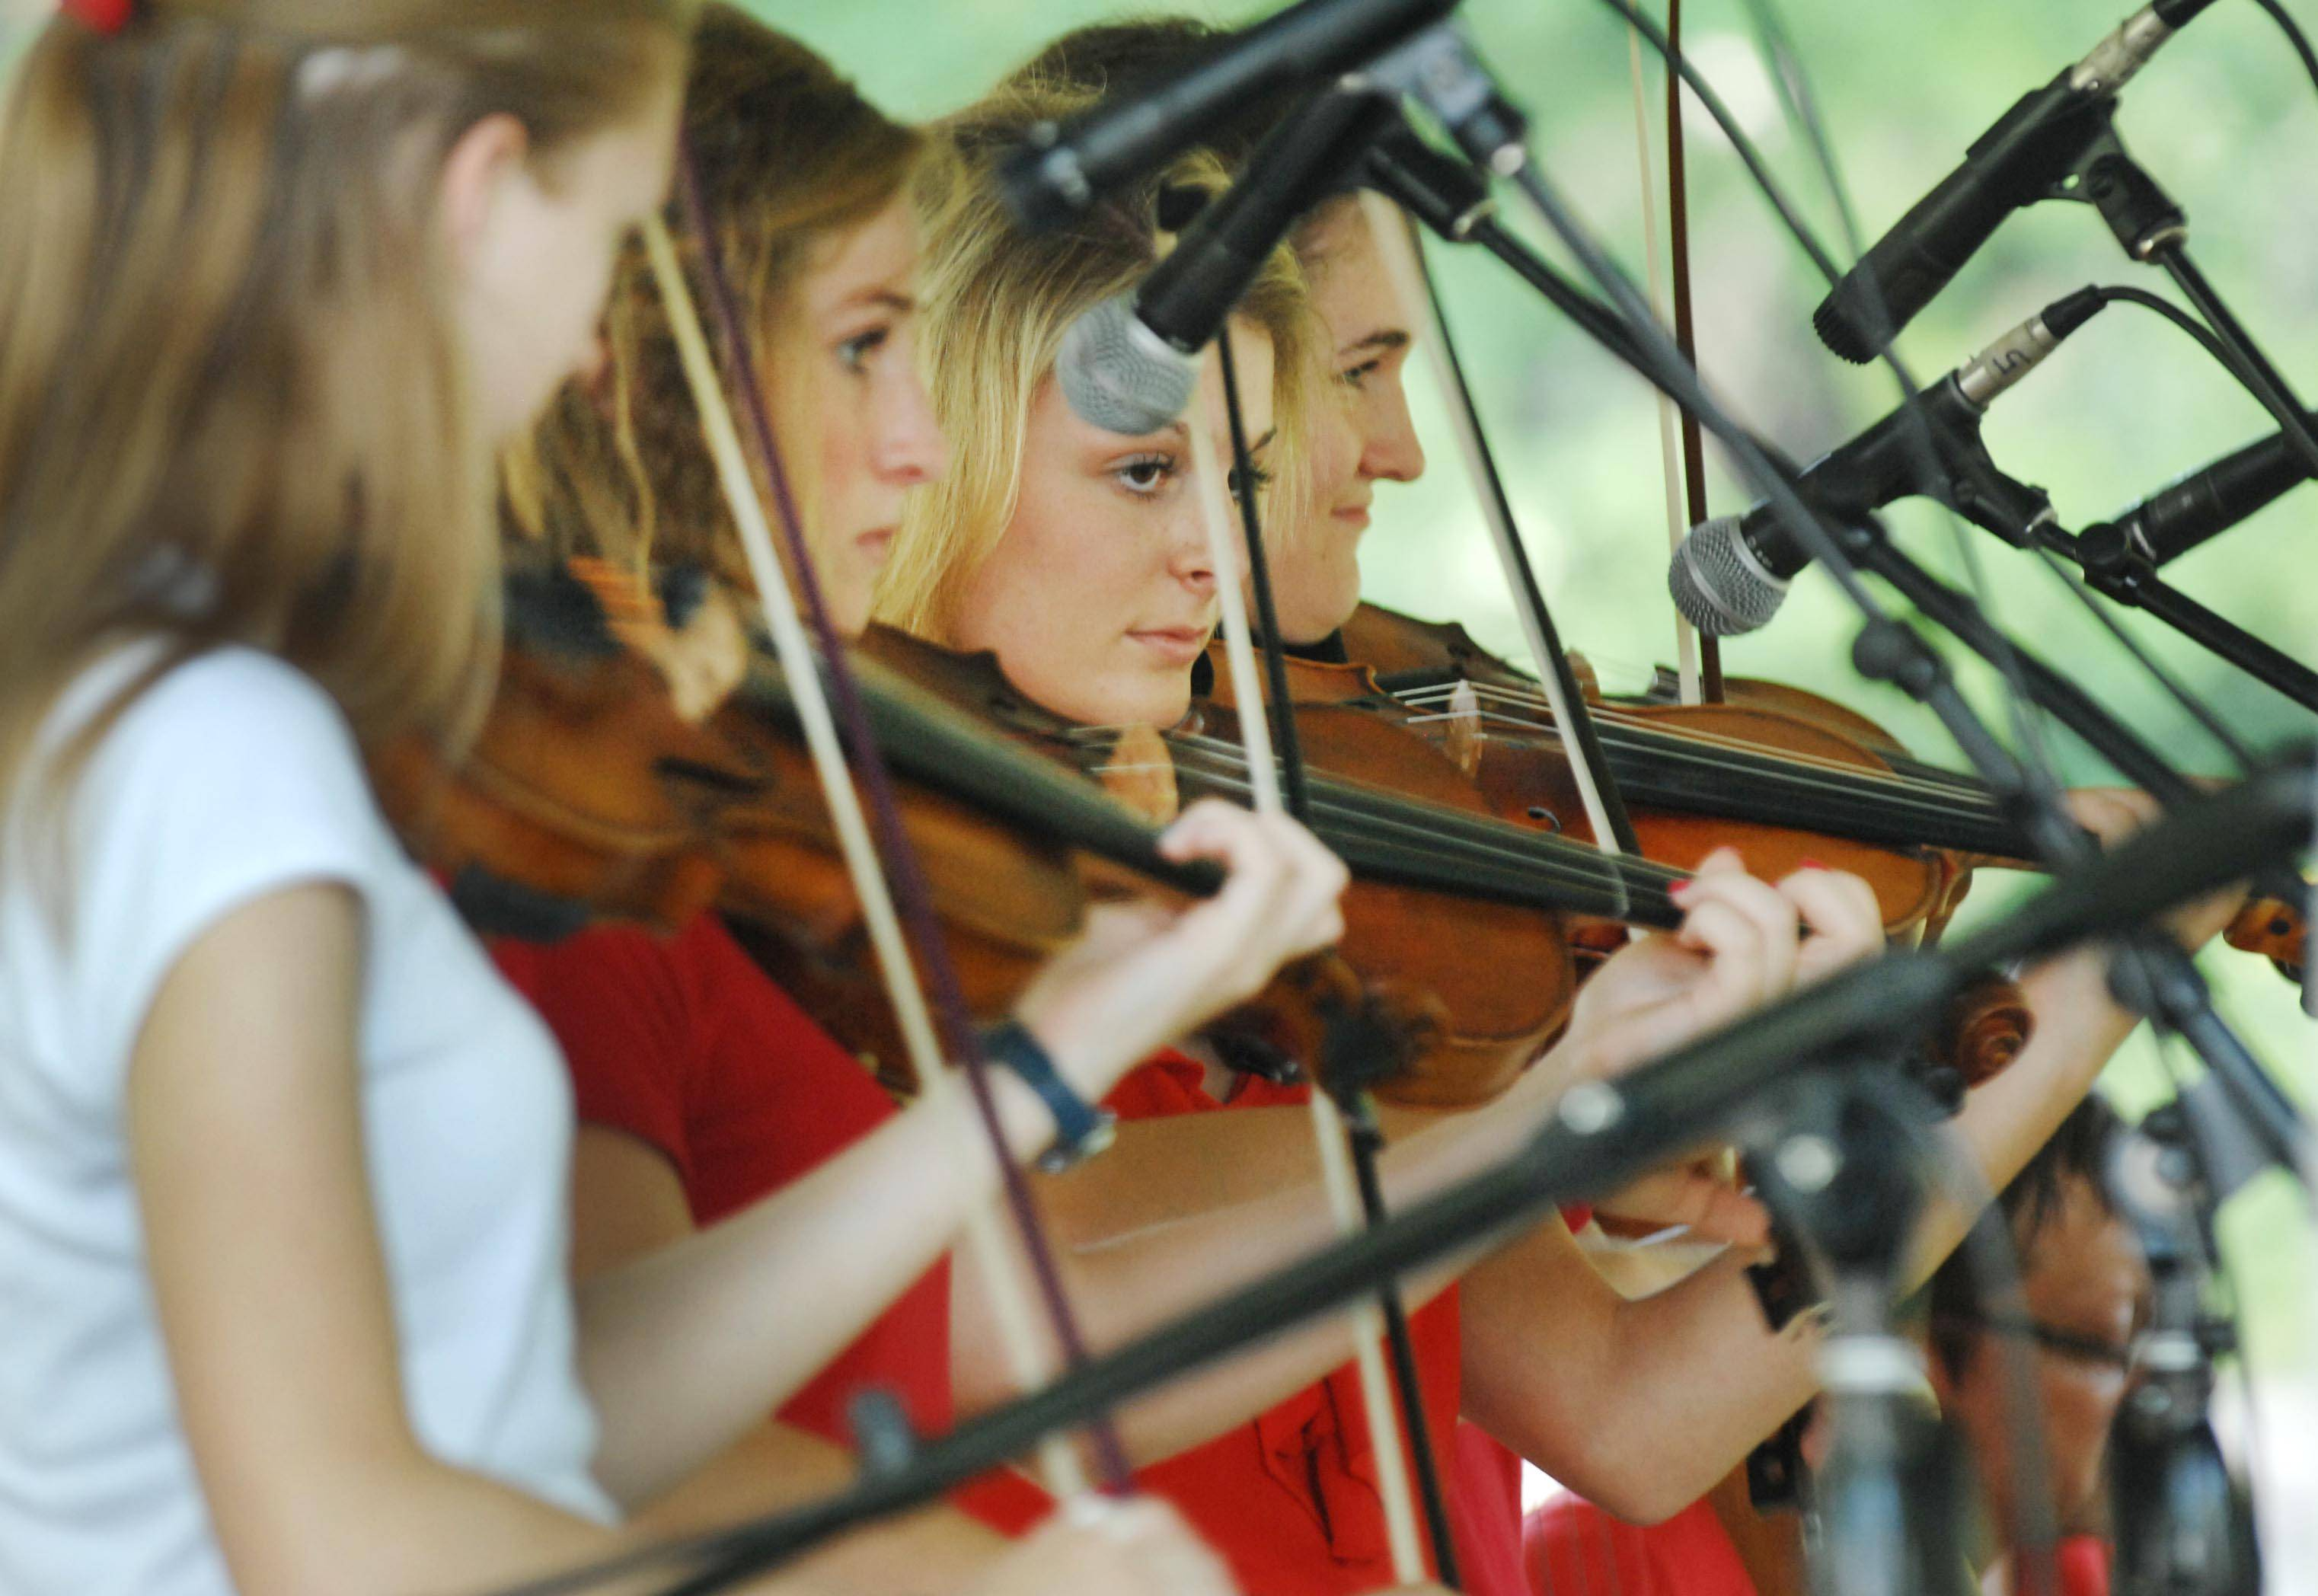 The Girls of Murphy Roche play fiddle together at the 36th annual Fox Valley Folk Music and Storytelling Festival in Geneva. They are part of the Murphy Roche Irish Music Club of Burr Ridge.